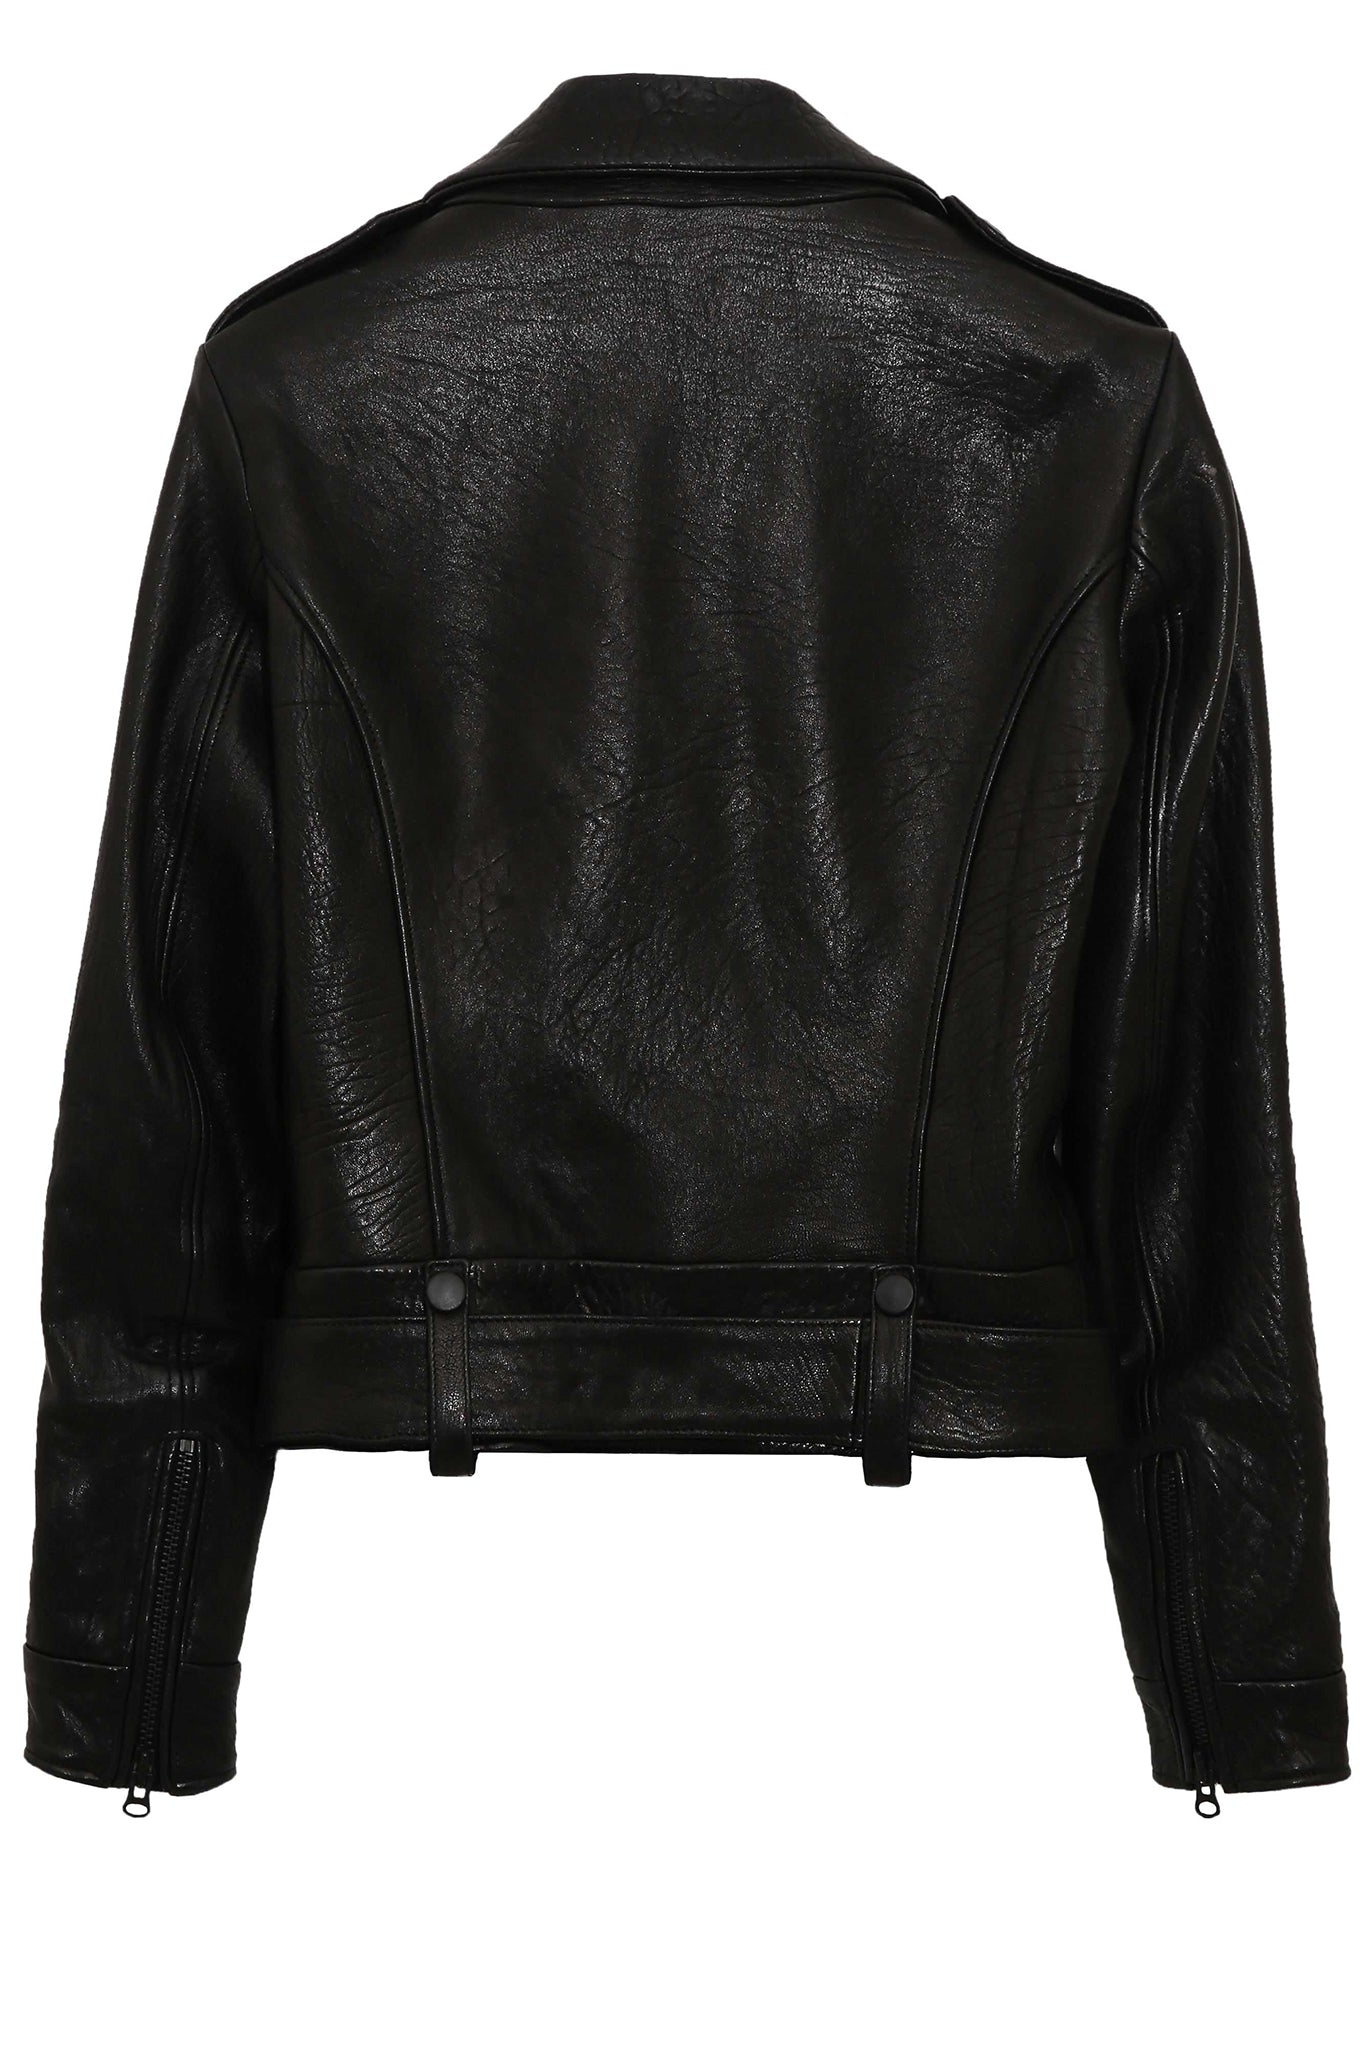 Whyte Studio Leather Biker Jacket in Black